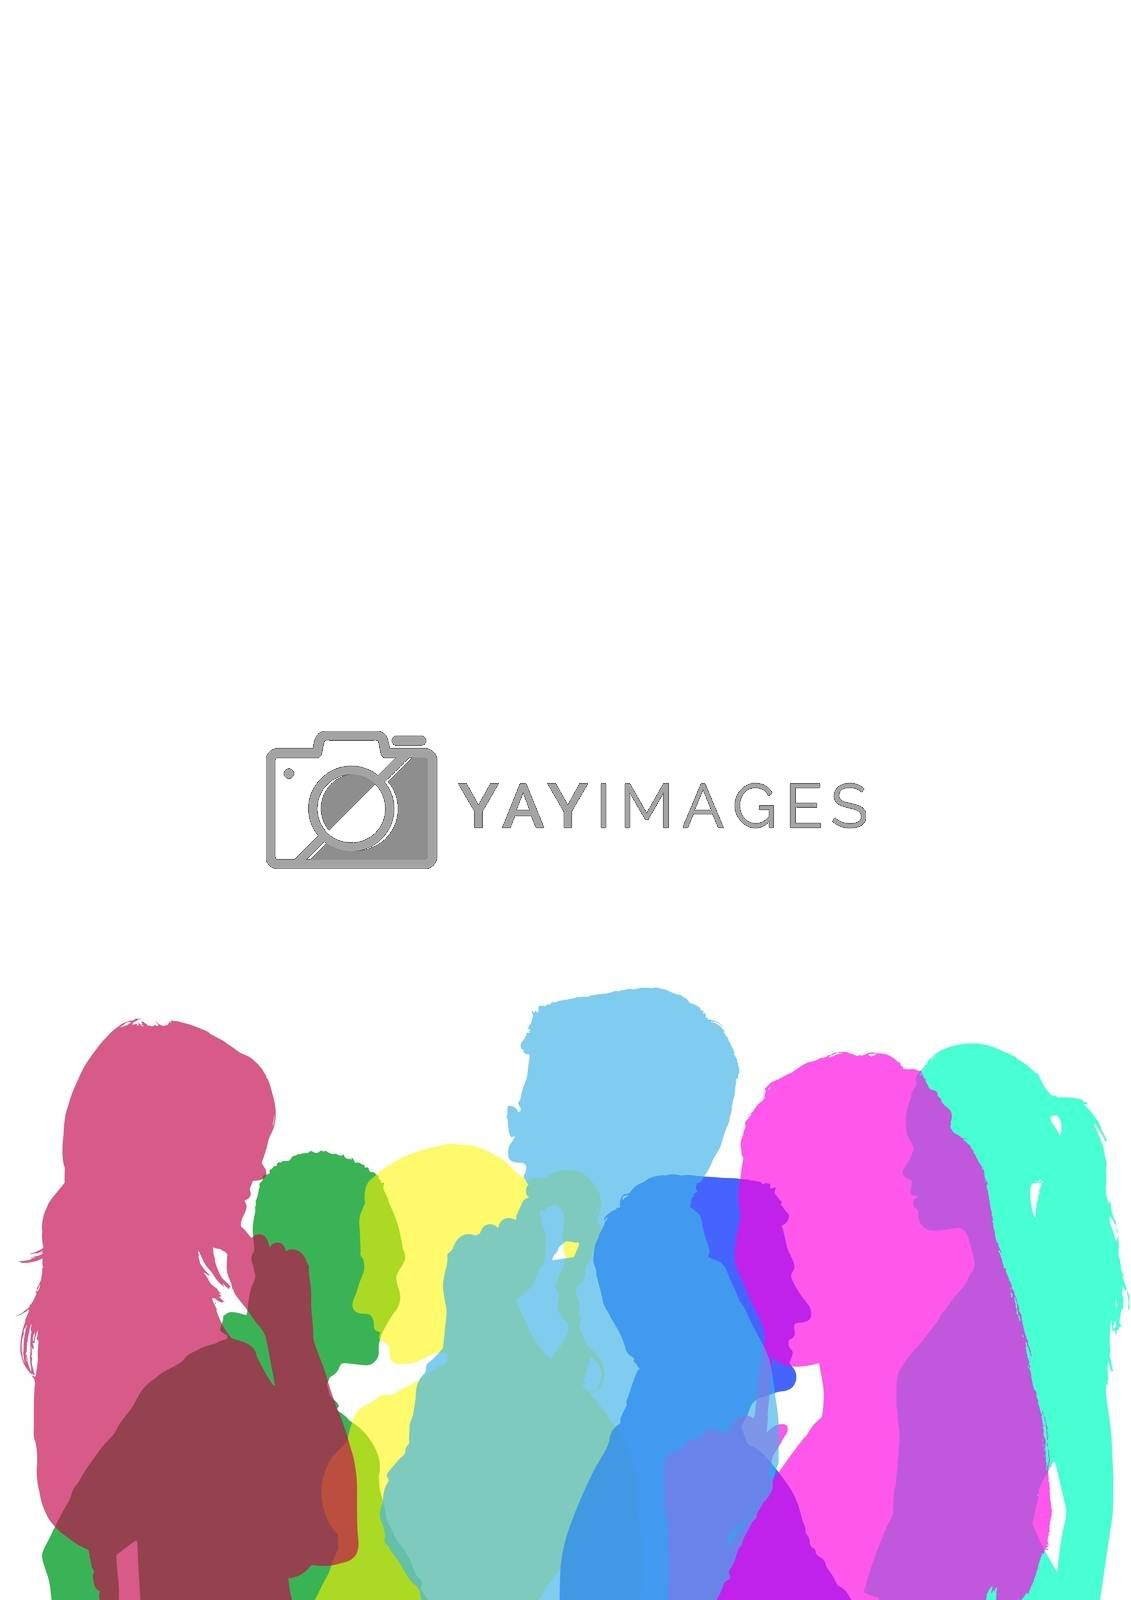 Digital composite of color silhouette of people